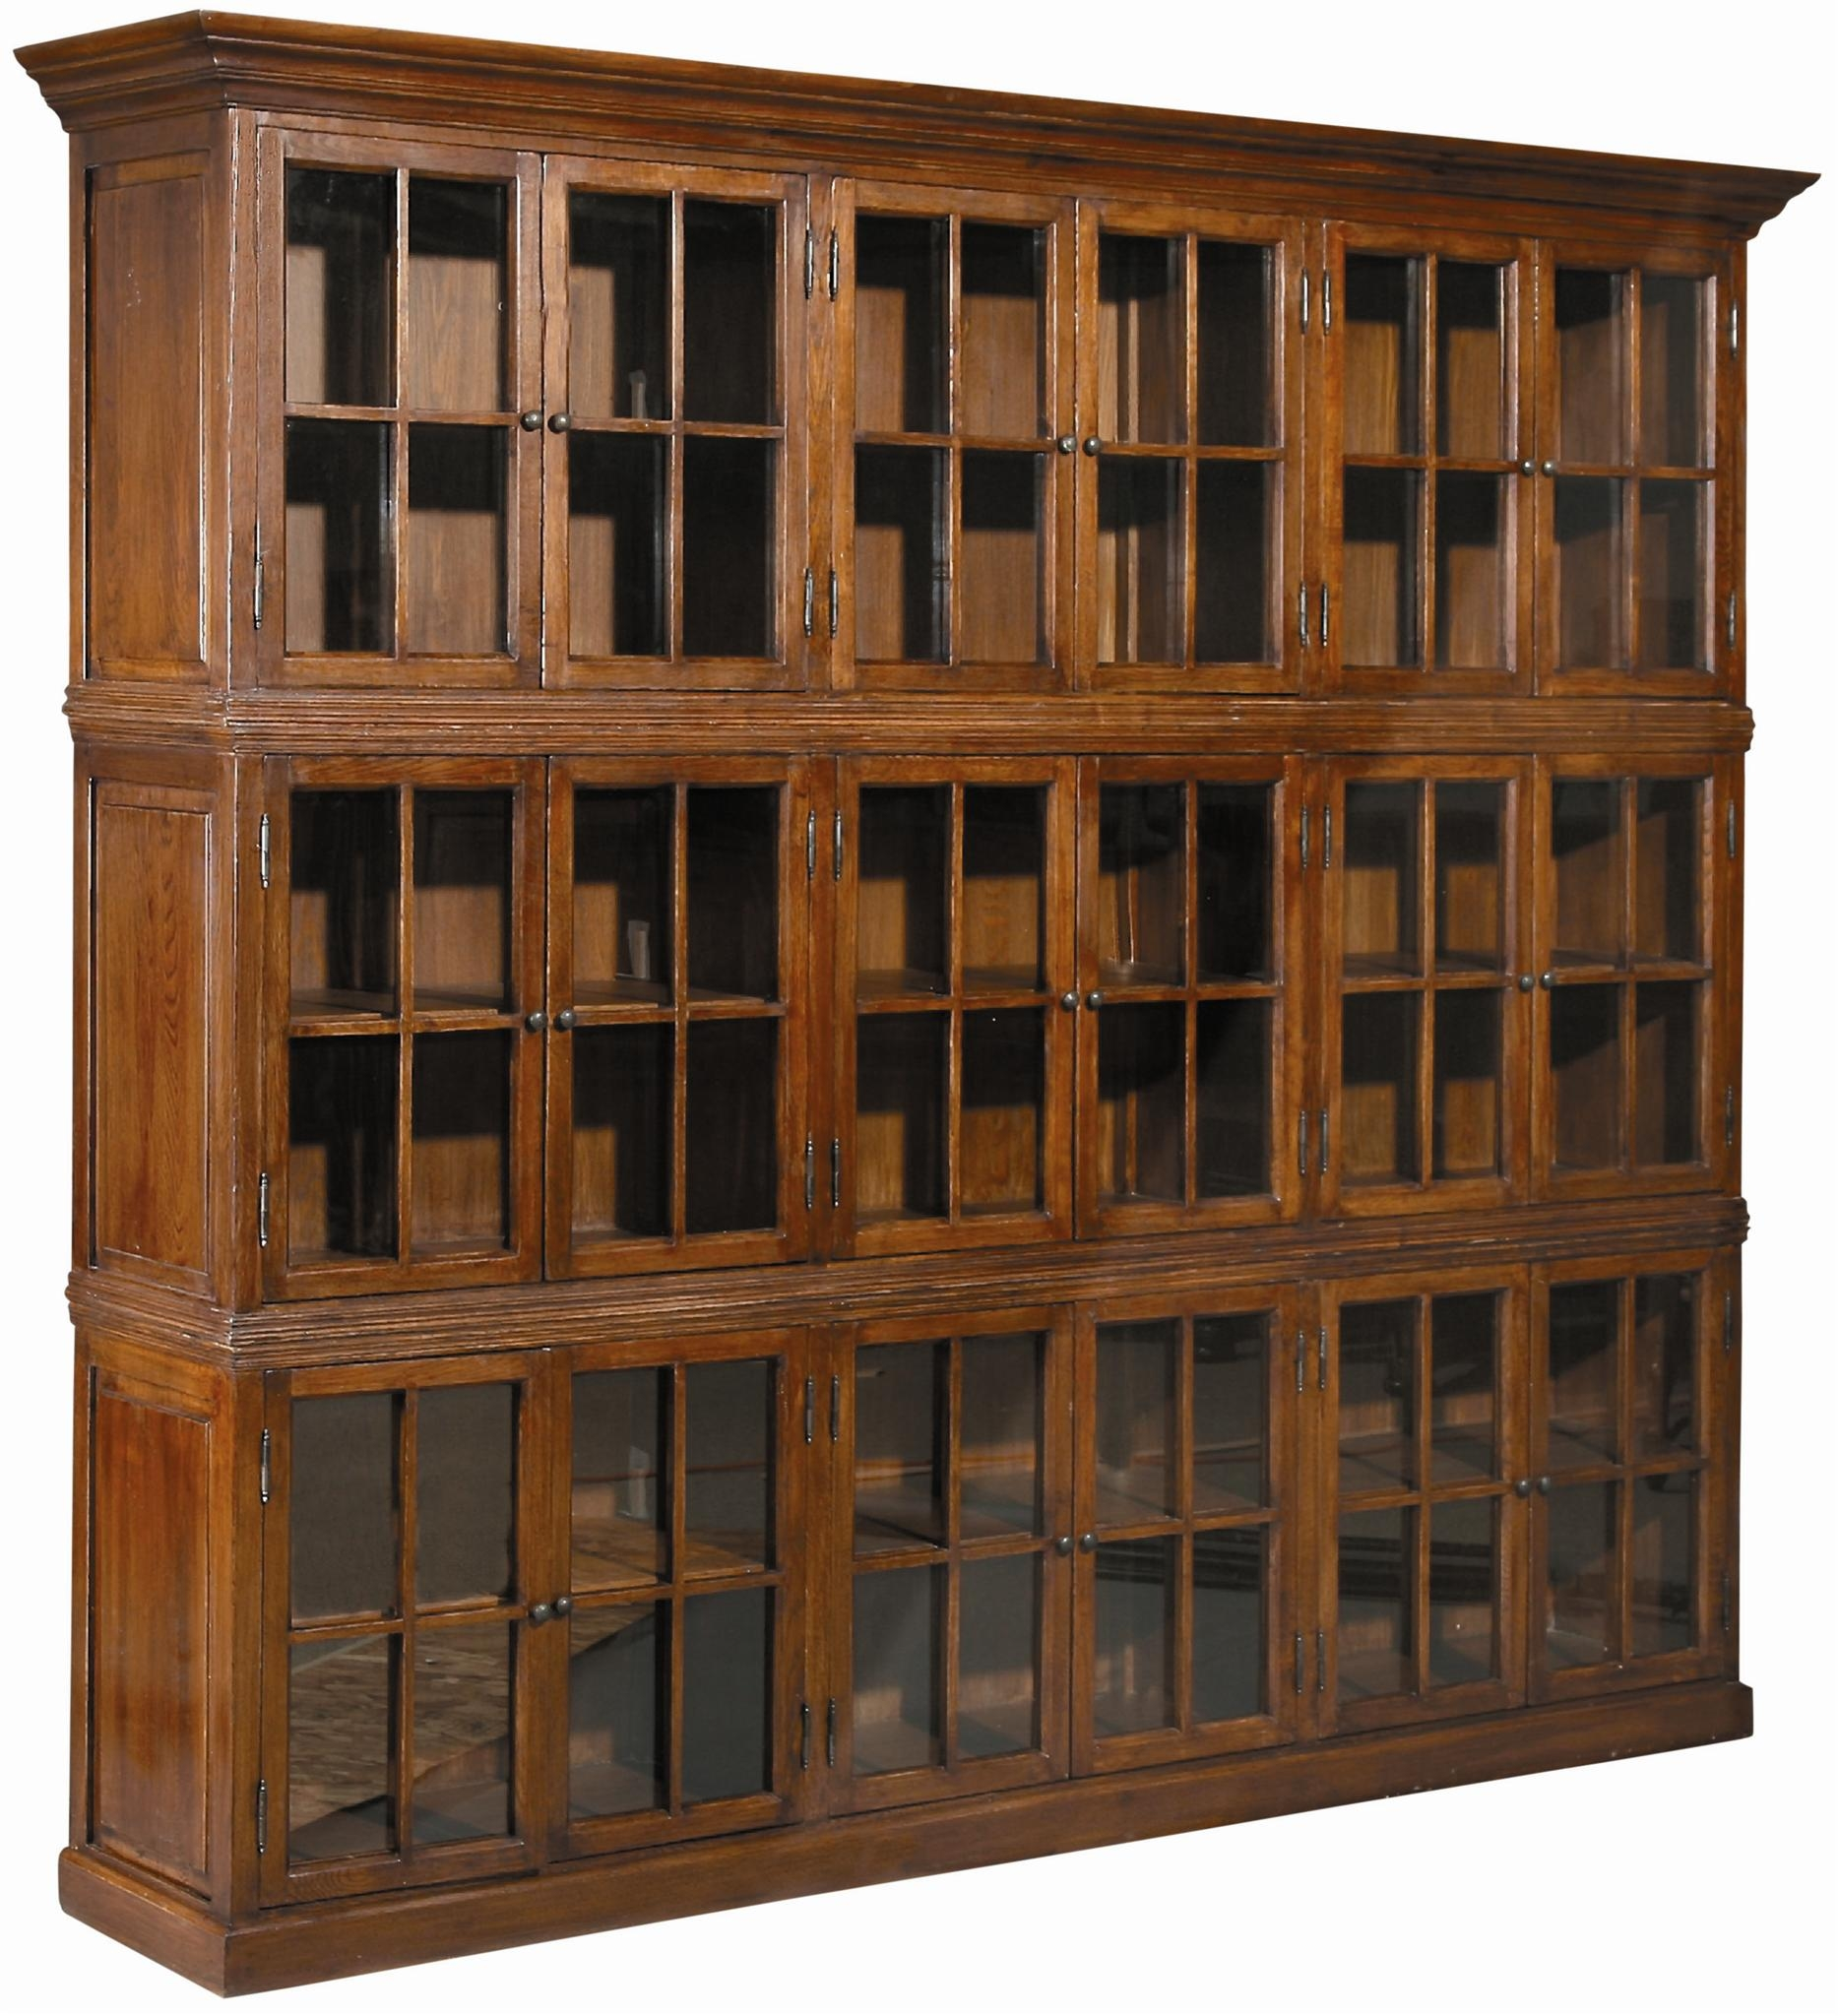 Wood Bookcases With Doors ~ Inspirations of wooden bookshelves